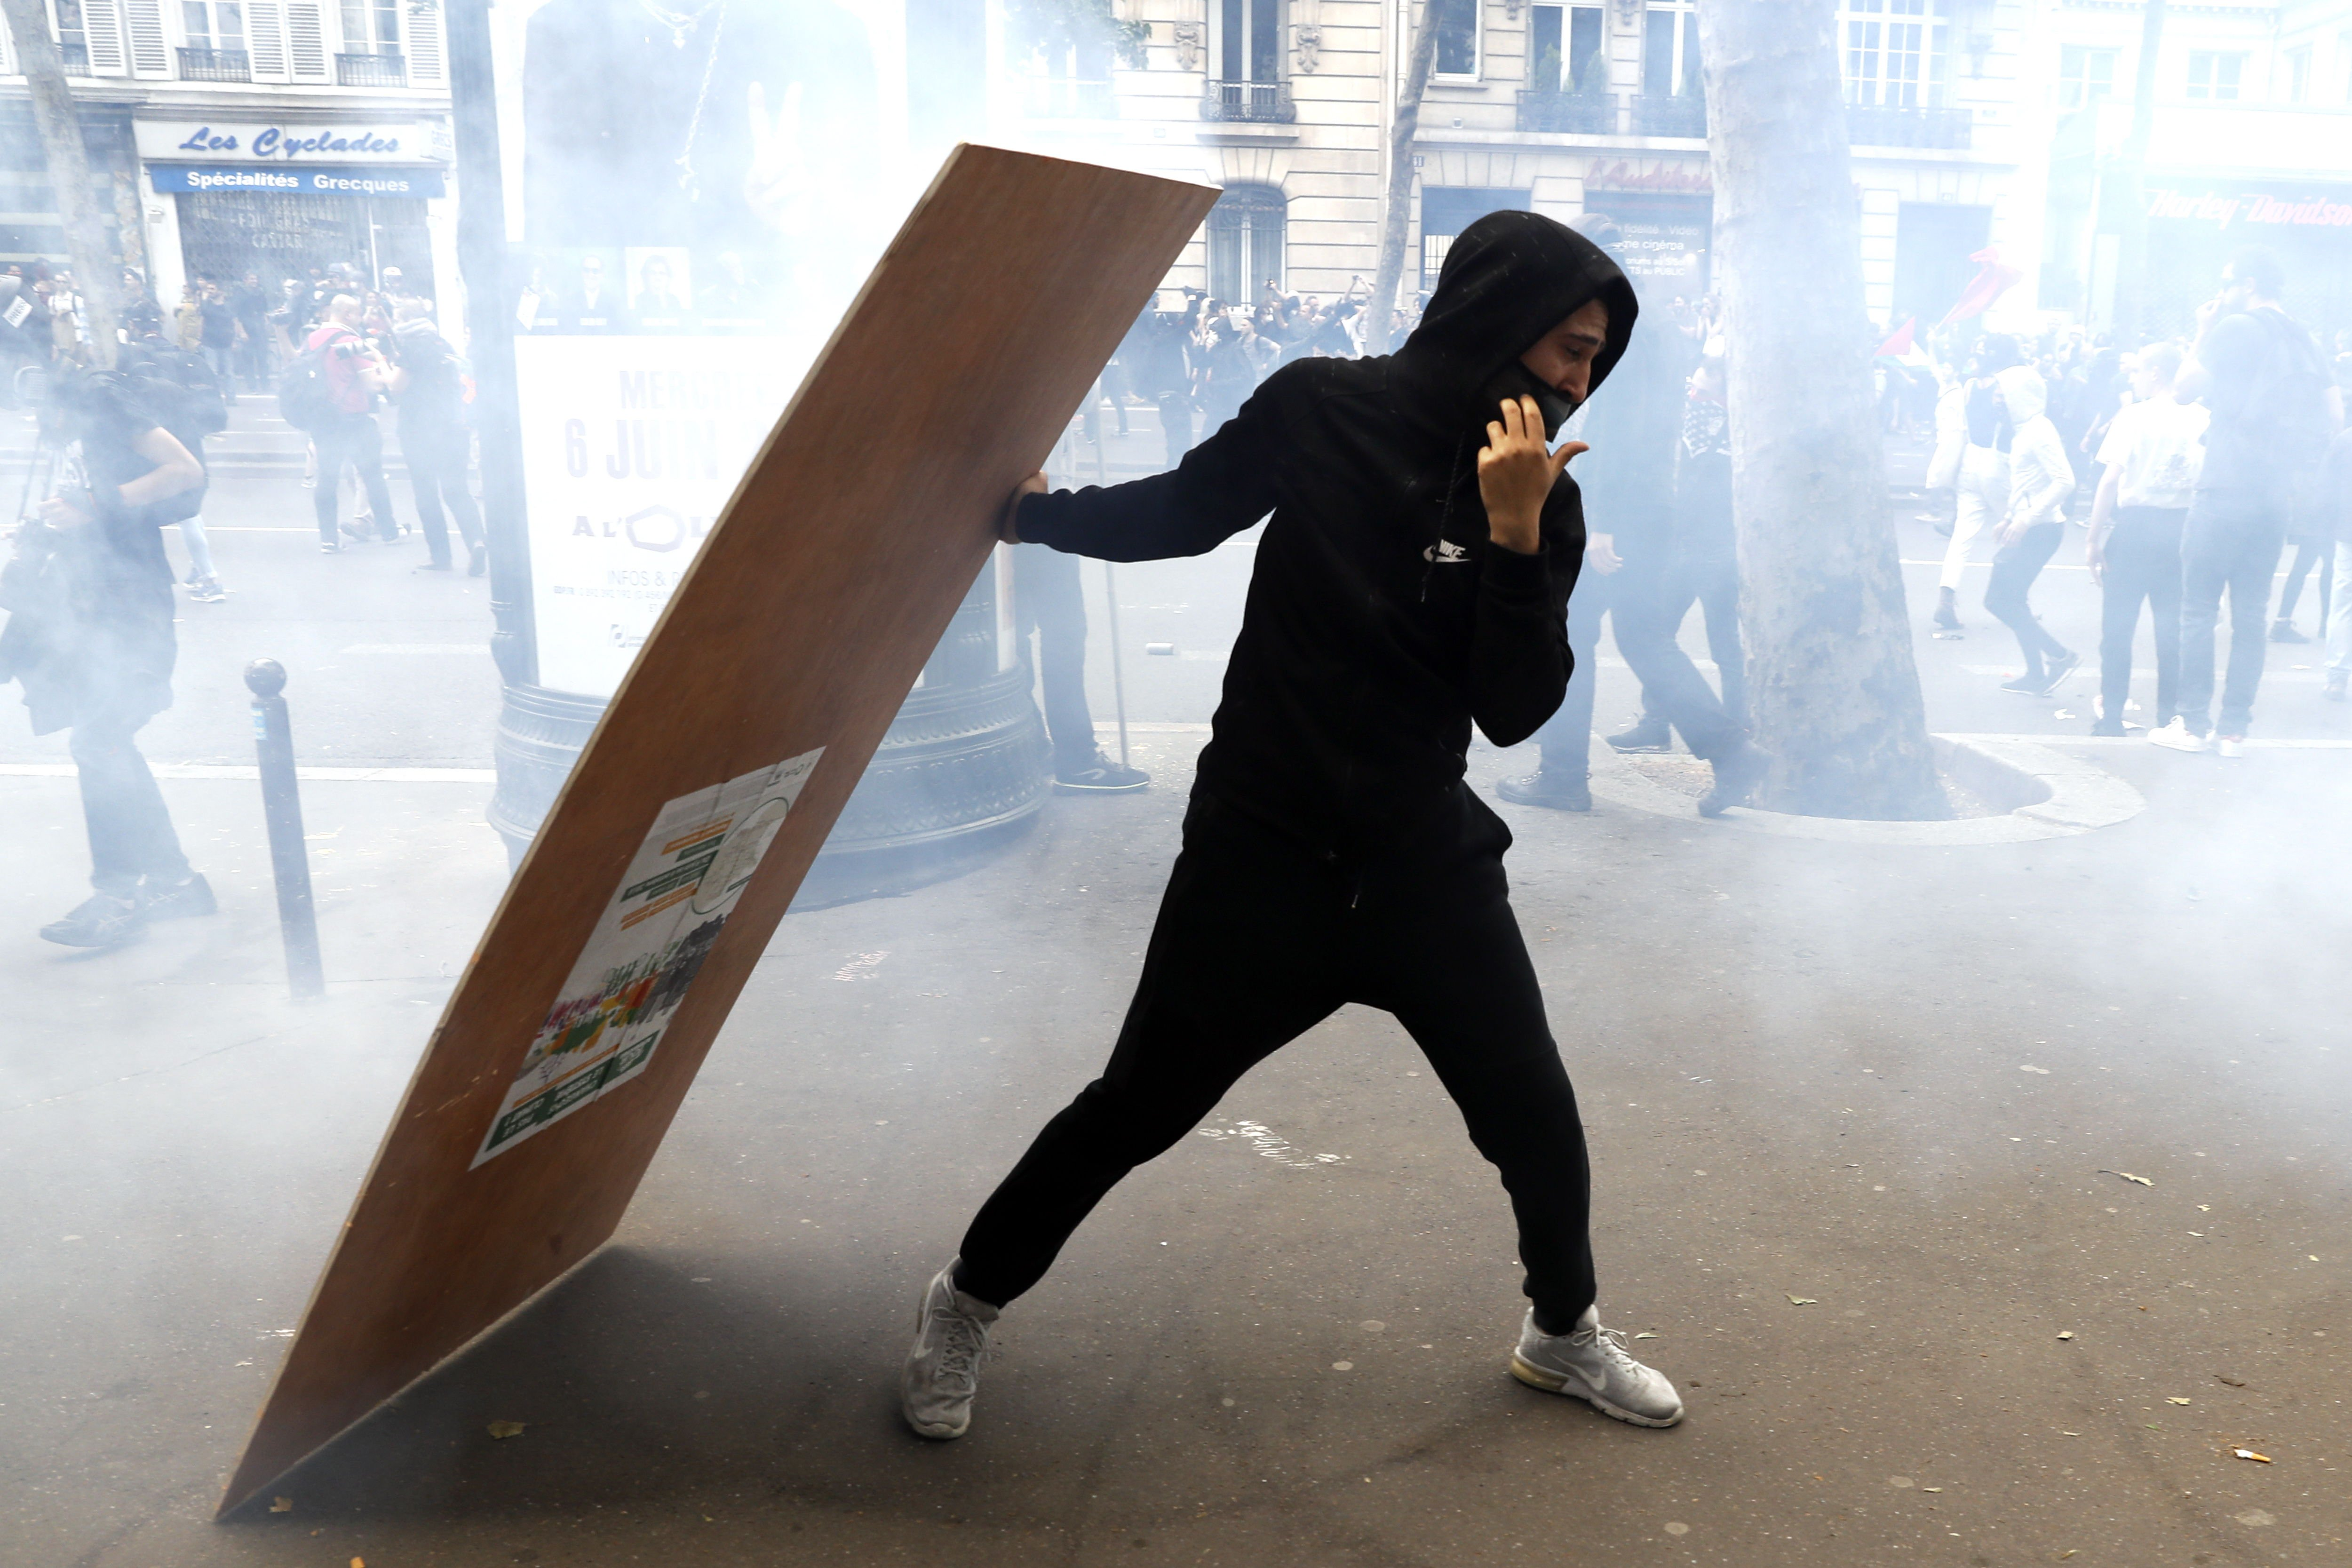 Paris (France), 26/05/2018.- A protester takes cover behind a wooden plank as clashes erupt with the police during a demonstration against French government reforms in Paris, France, 26 May 2018. Far left political parties and French trade union CGT (General Confederation of Labour) call for a national day of protest against the government policies. (Protestas, Francia) EFE/EPA/ETIENNE LAURENT